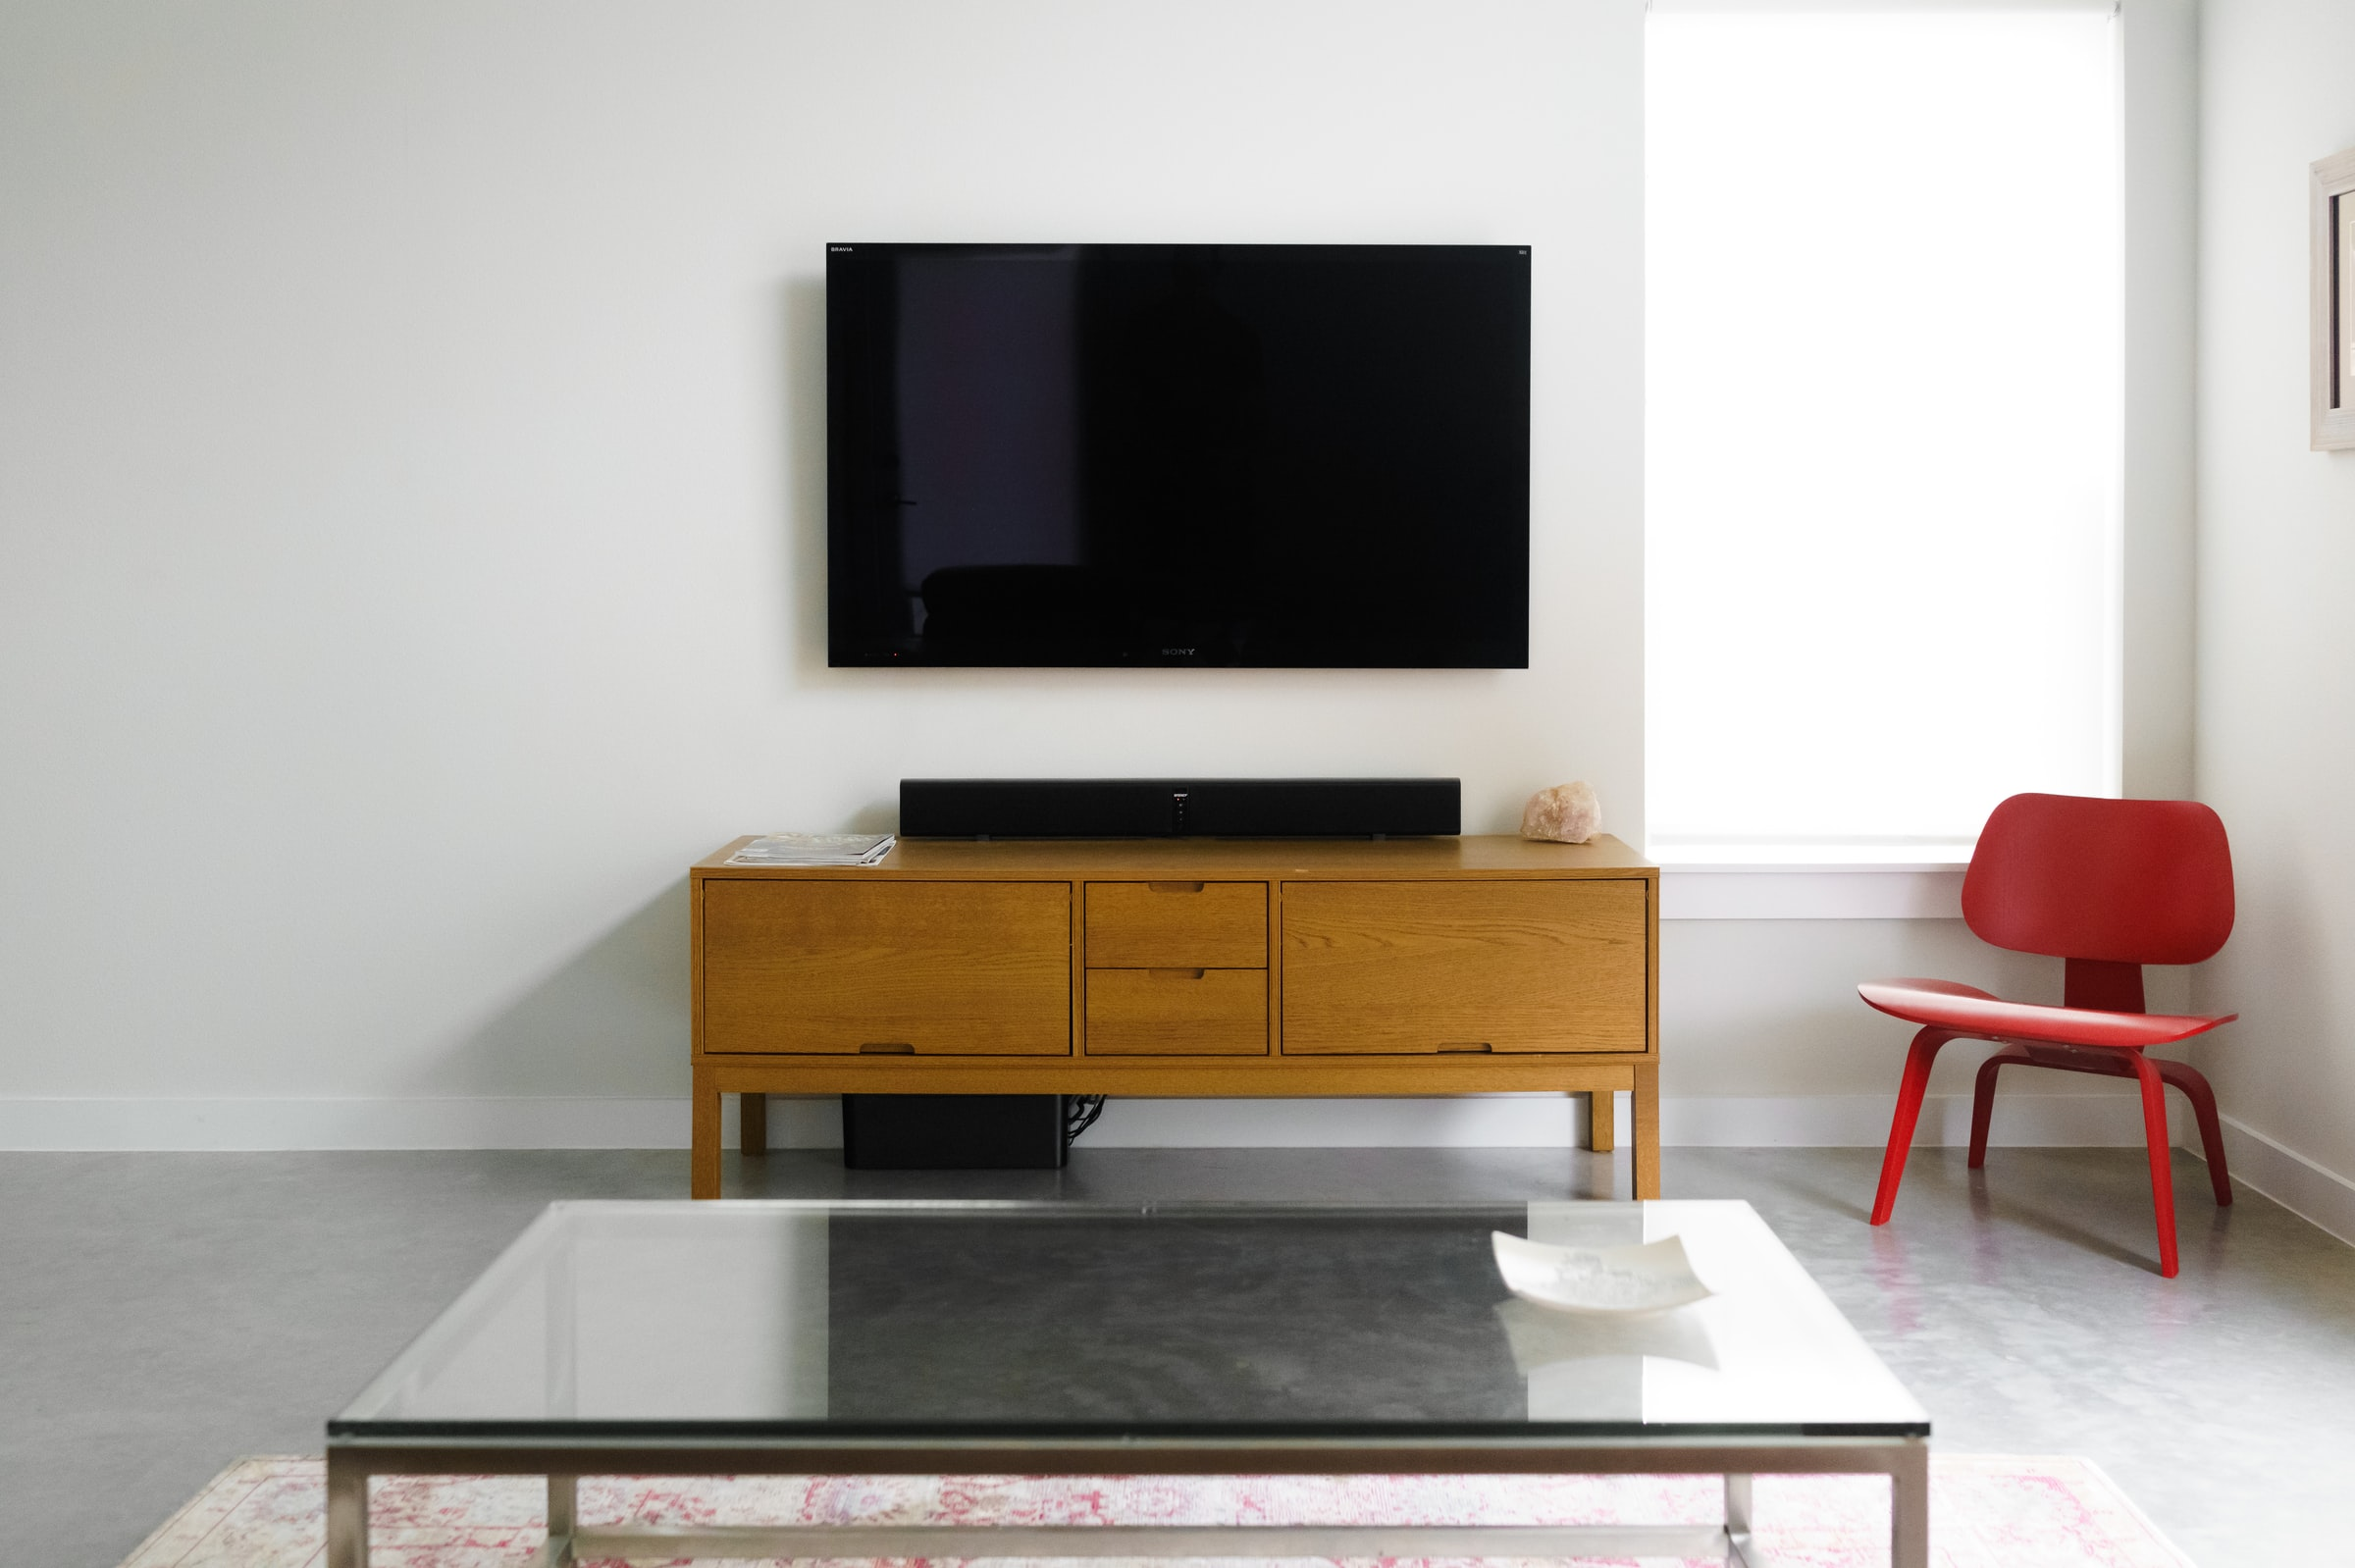 Wall Hang Your New TV Securely